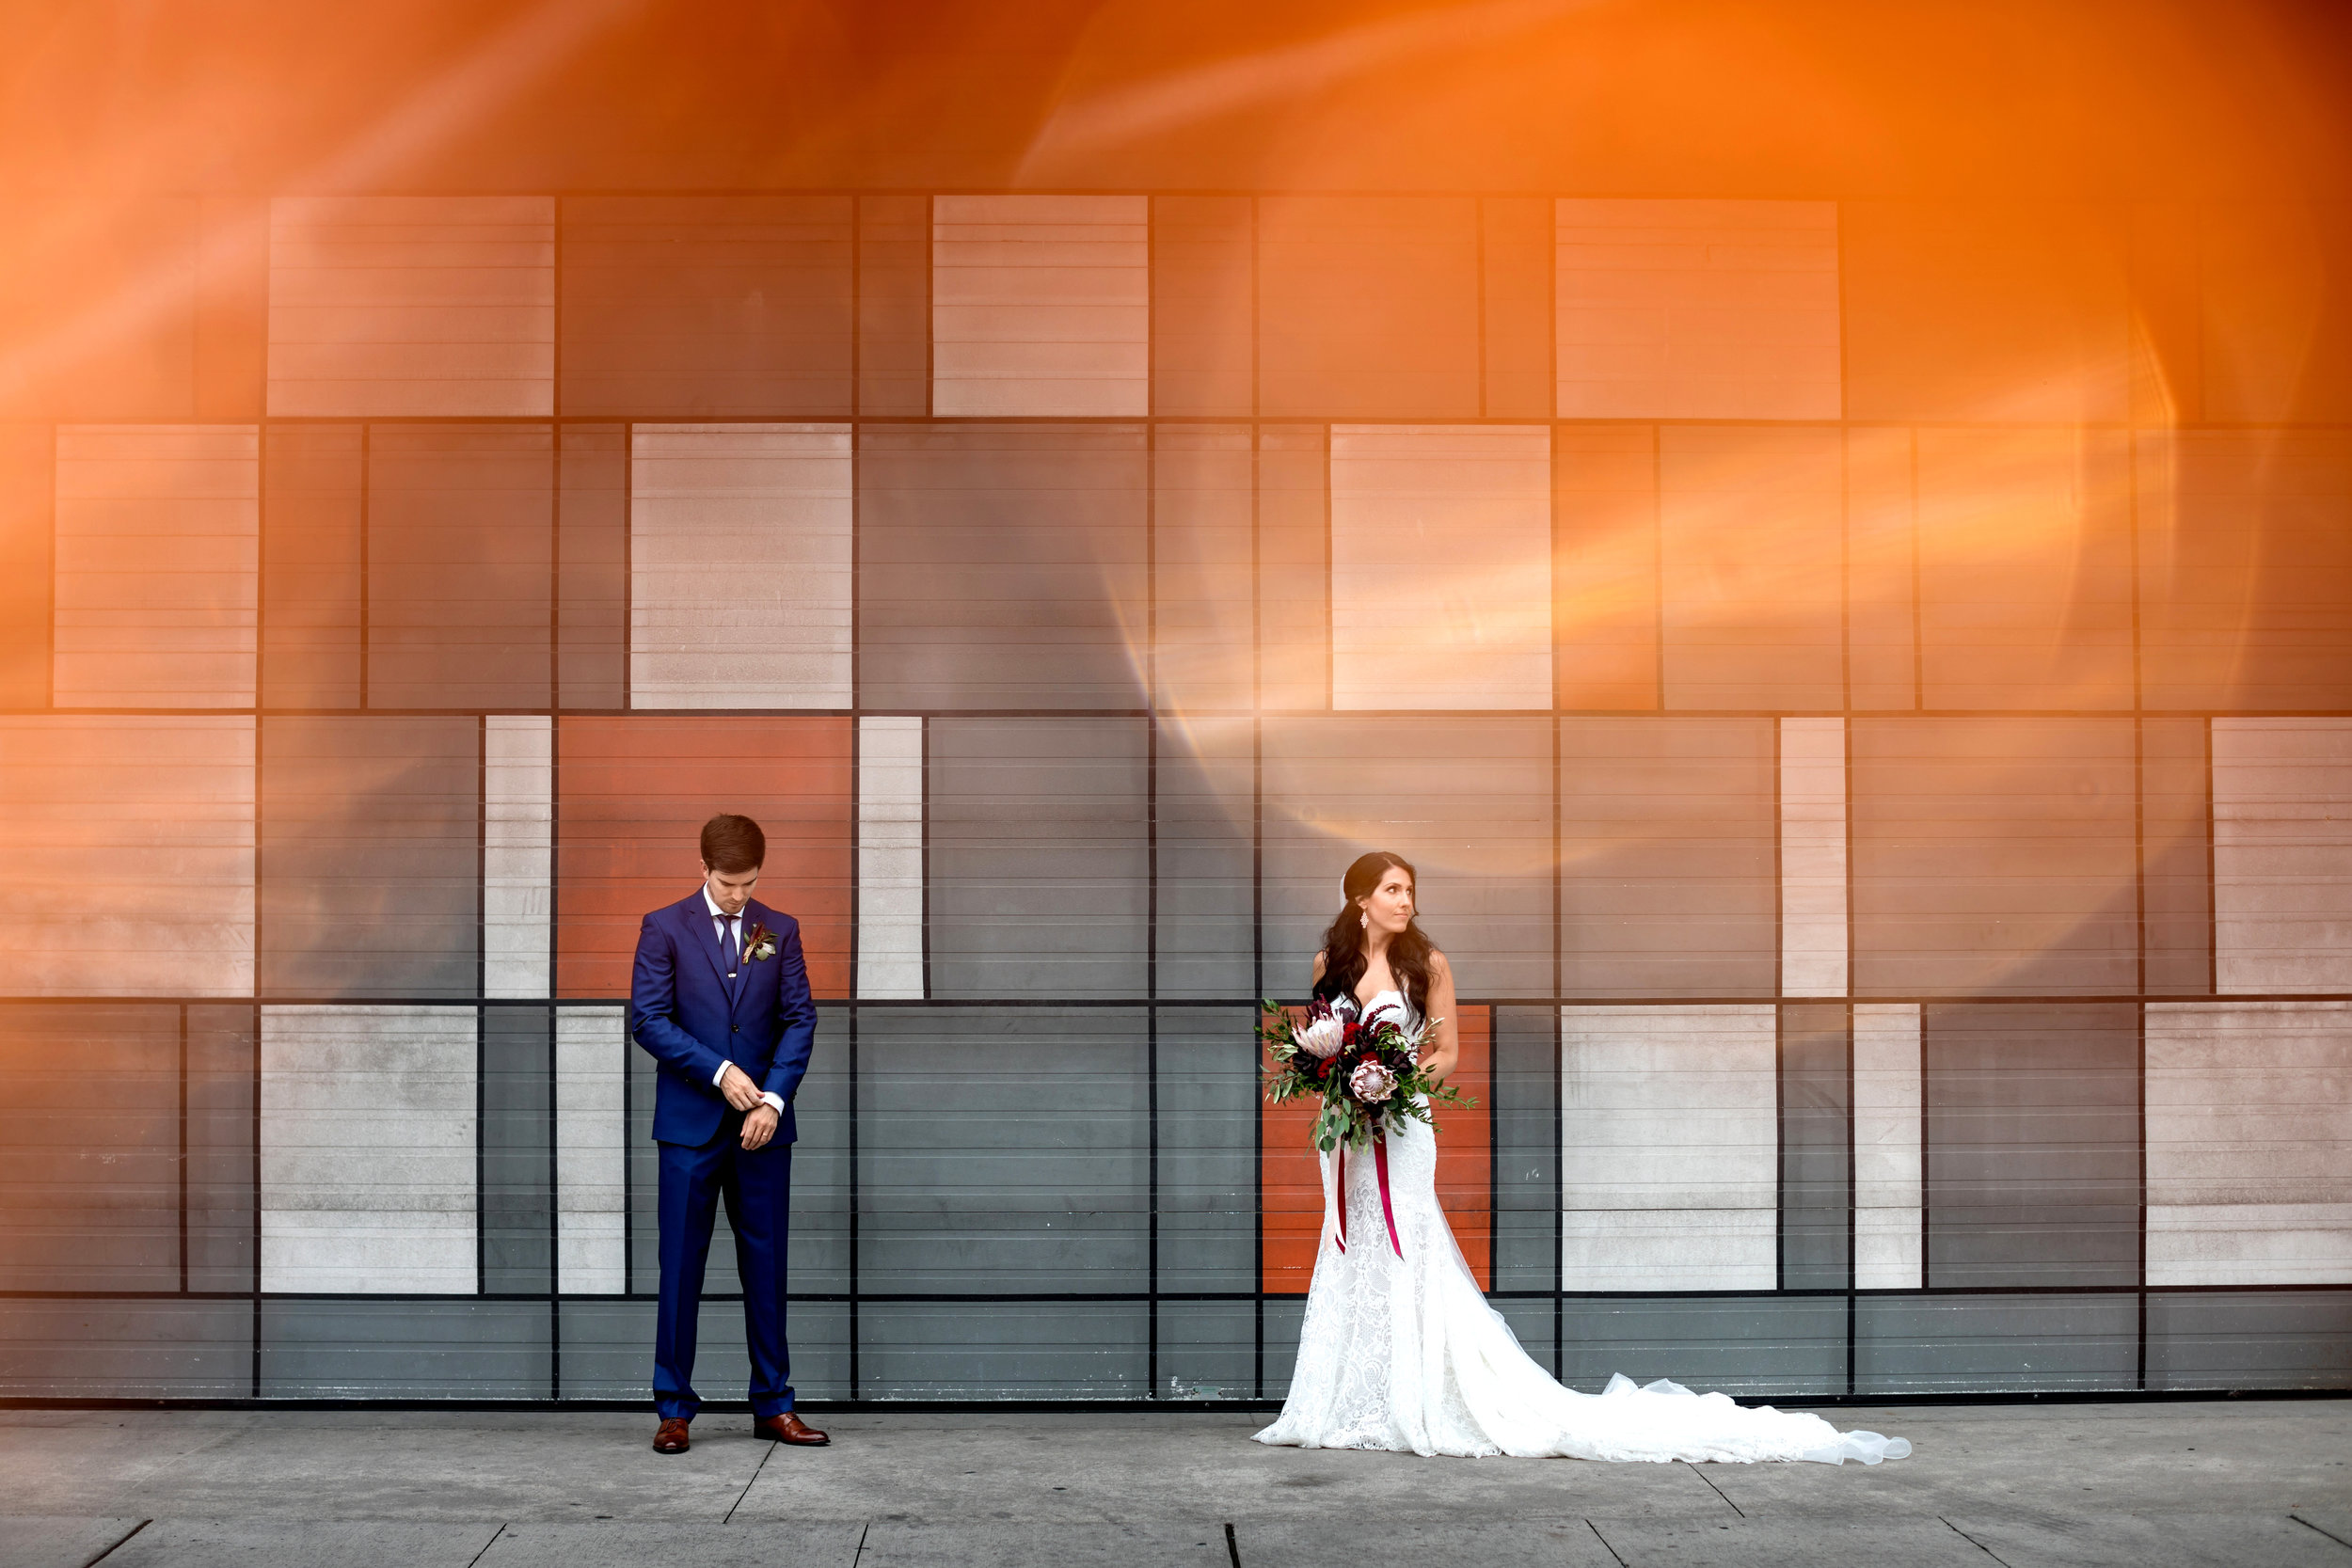 PWPC Spring 2019 Bride and Groom Portrait 1.jpg